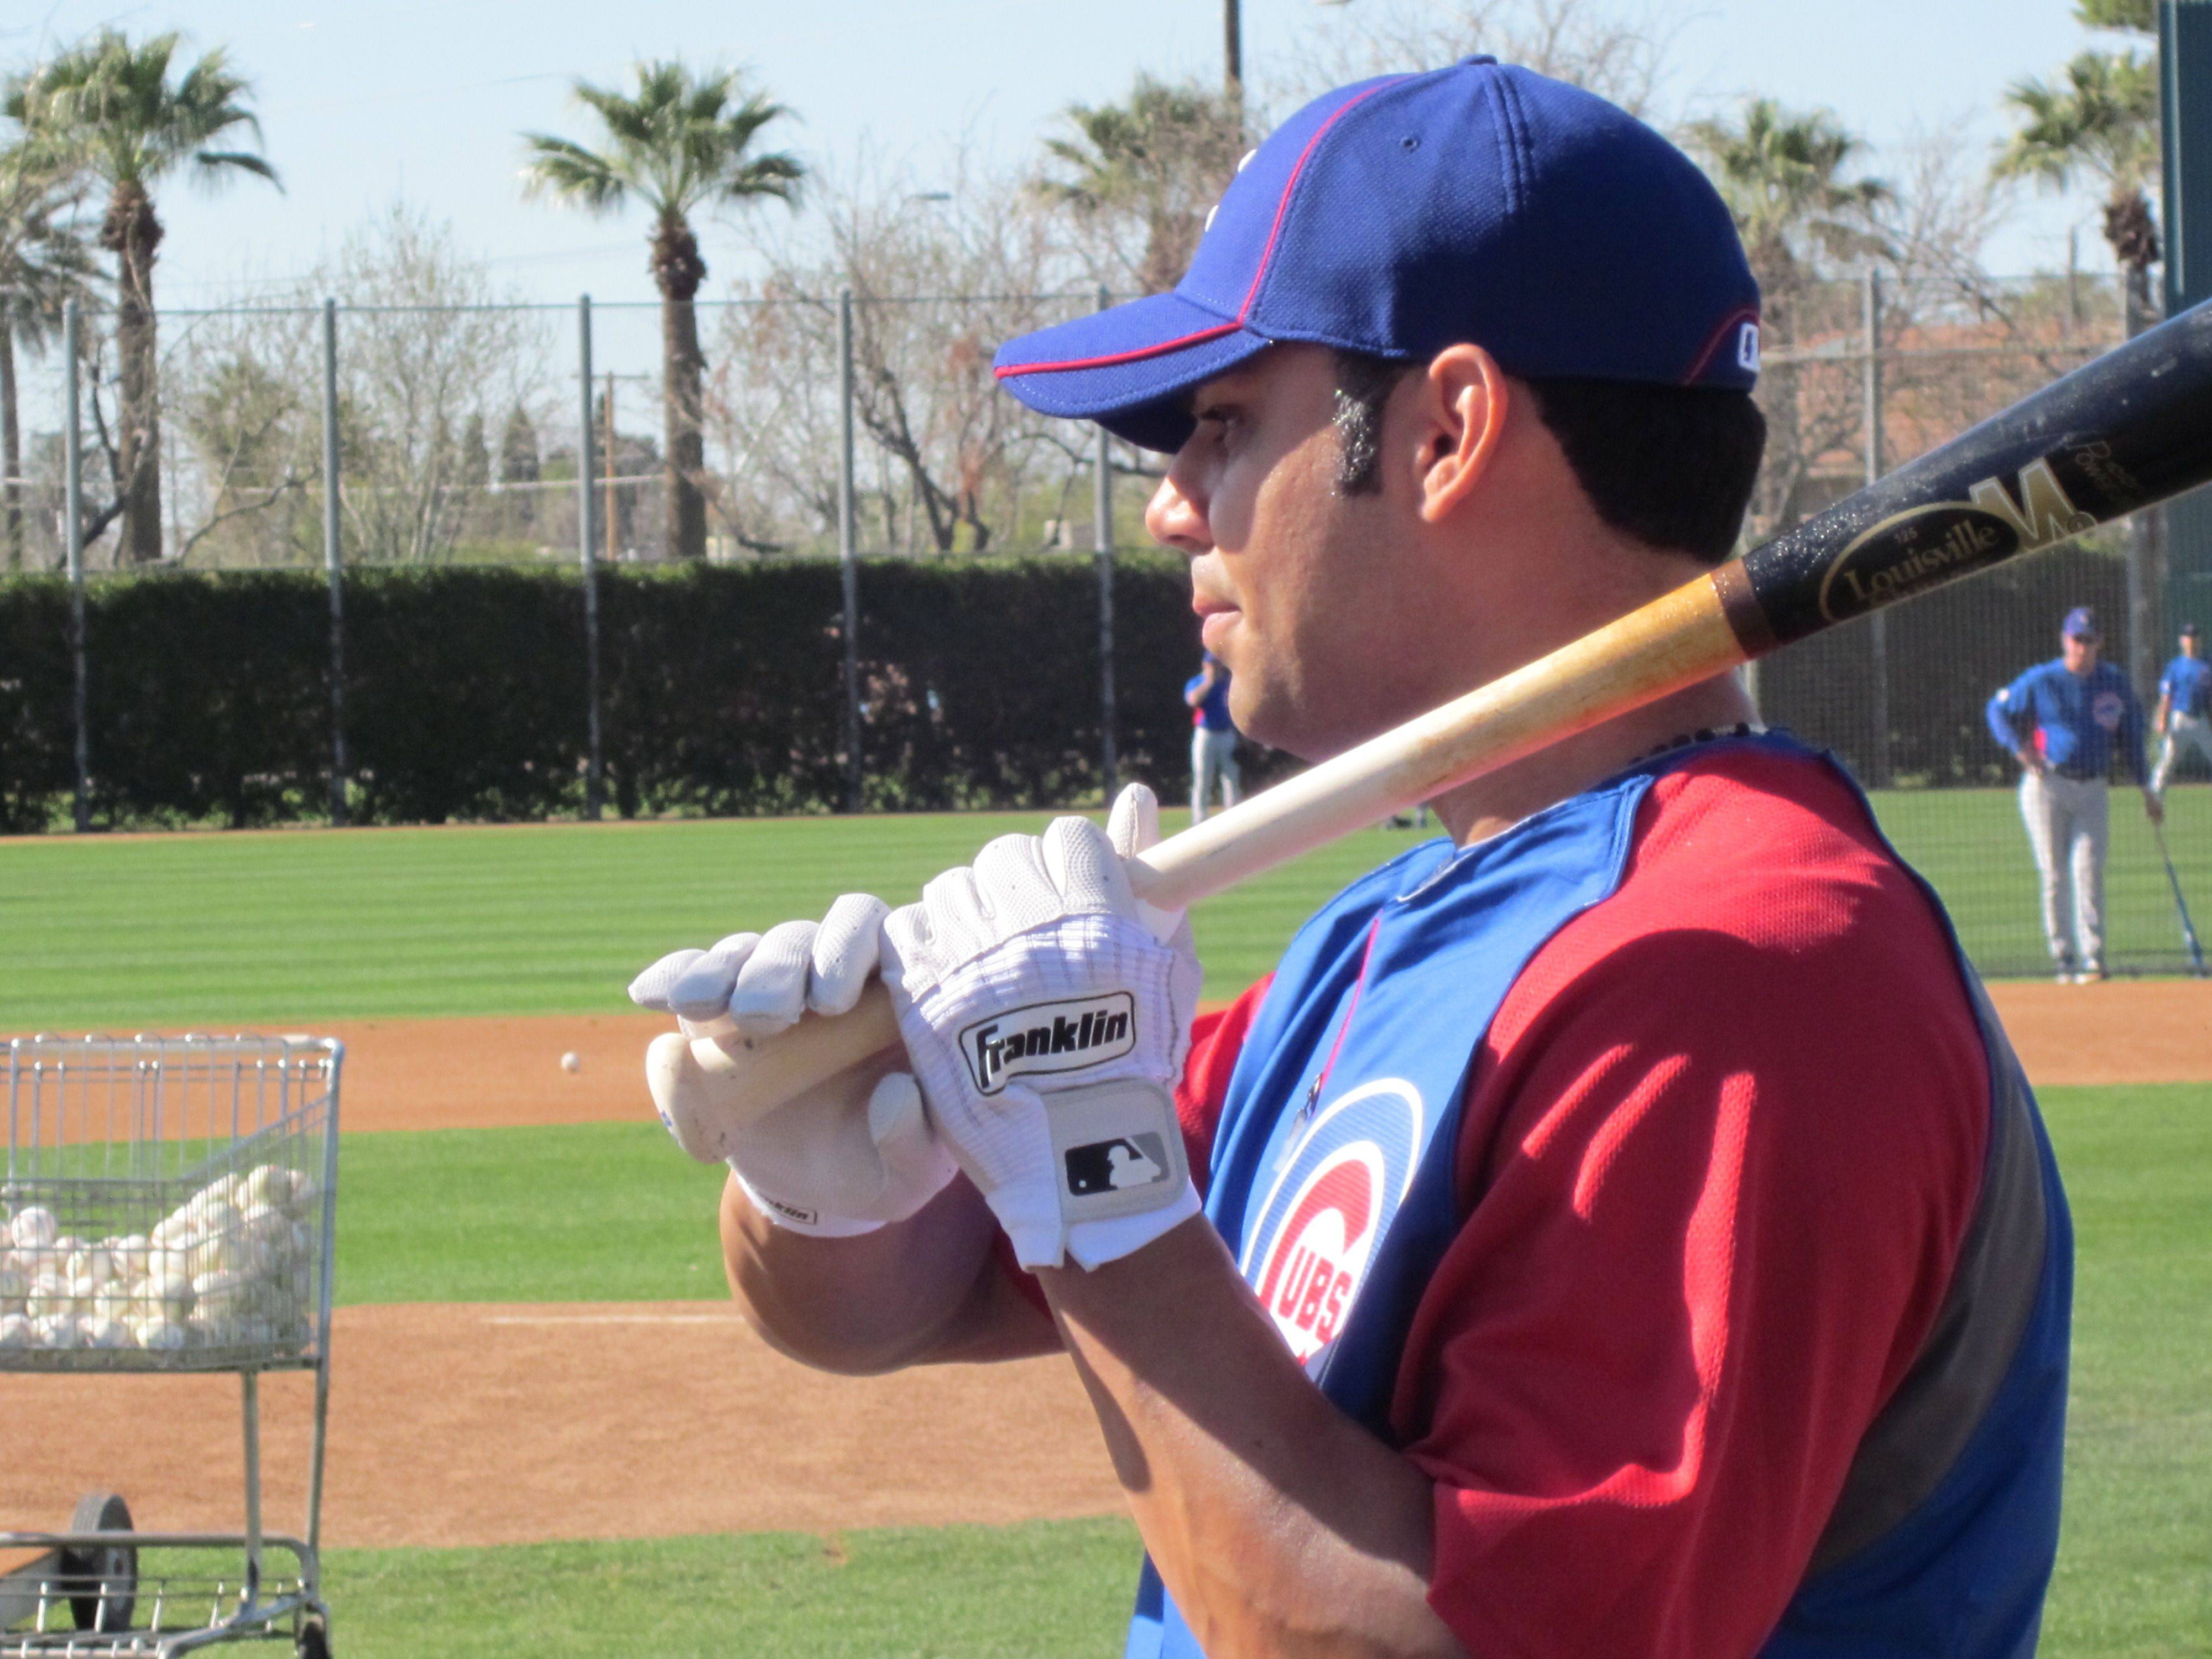 New Cubs first baseman Carlos Pena says last year's hitting slump is in the past and he's working hard to not take any added pressure with him into the batting box this season.